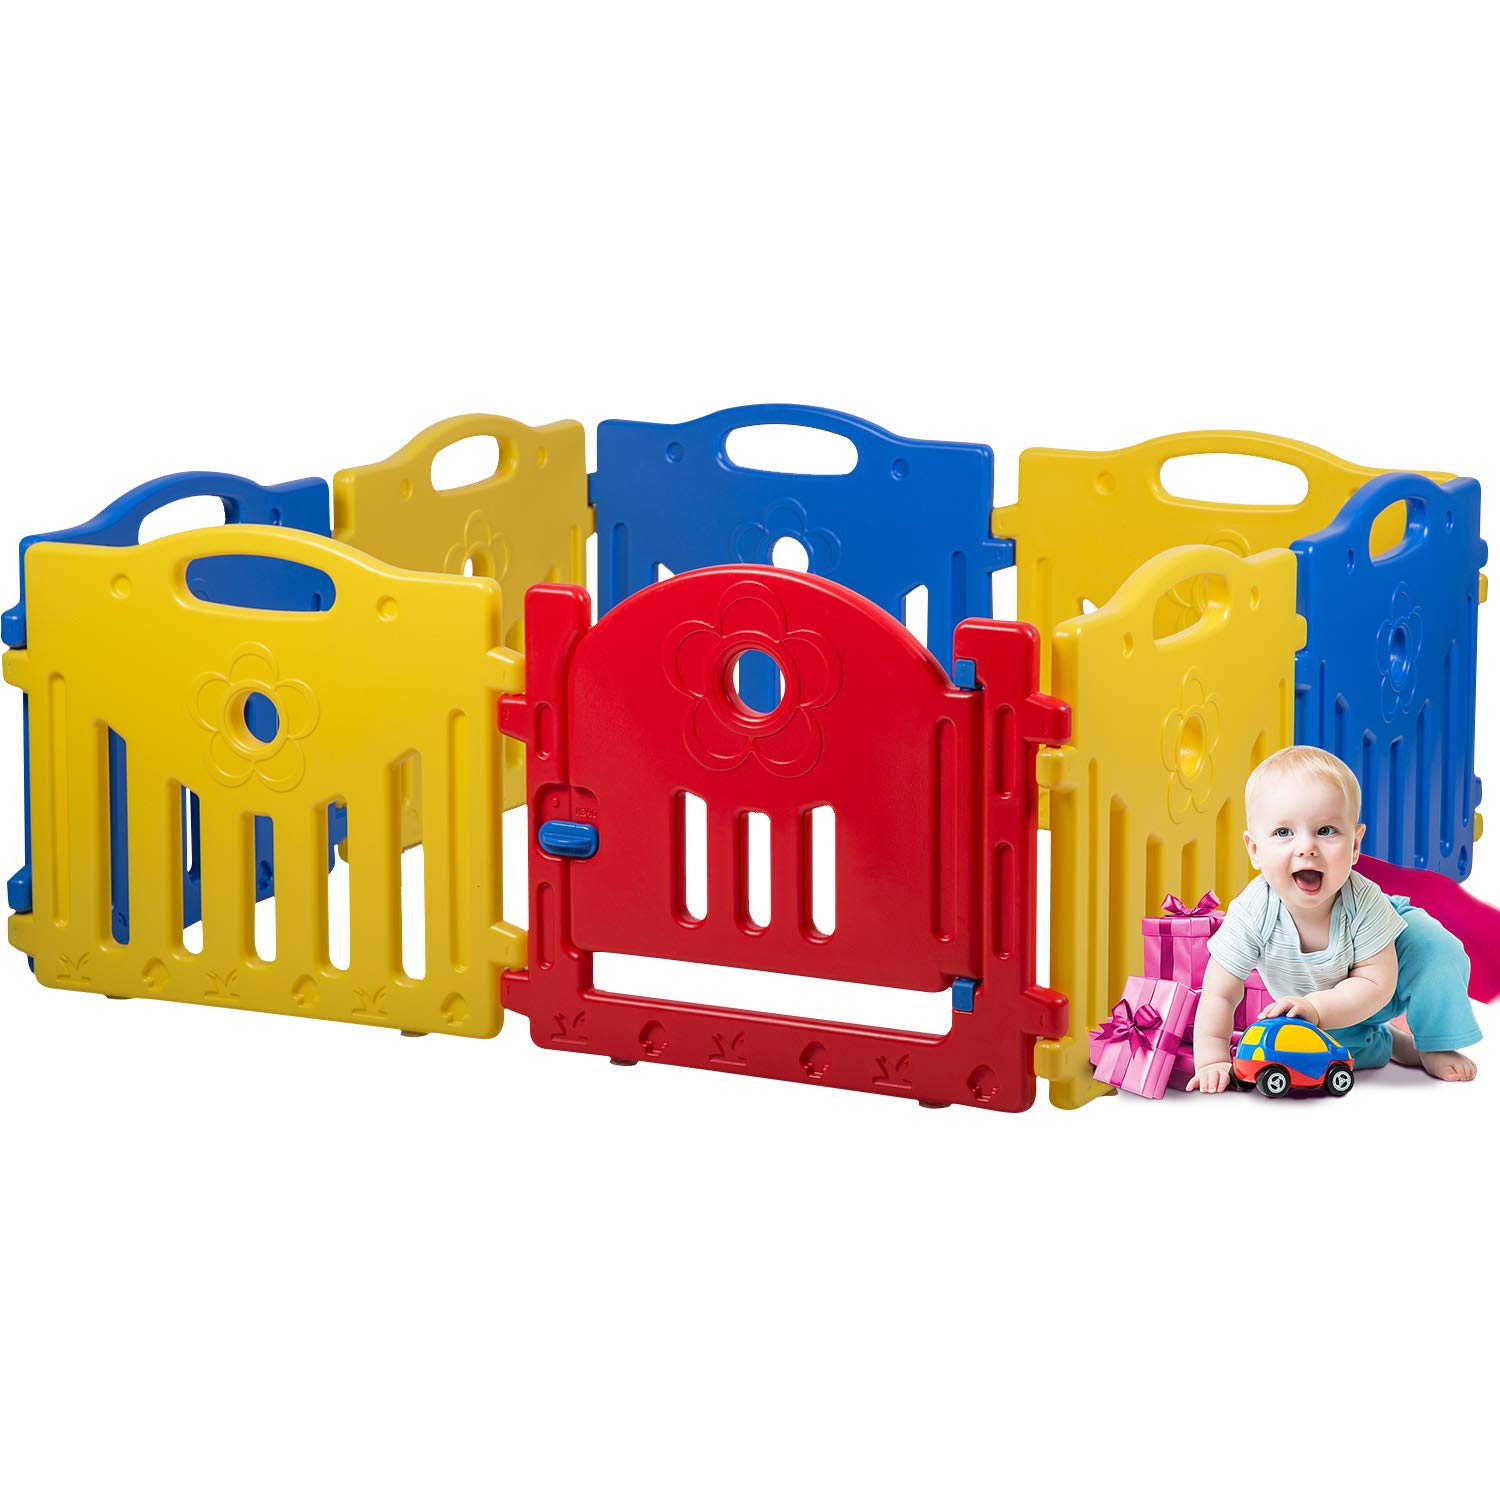 Adjustable Baby Playpen Kids 8 Panel Safety Play Center Yard